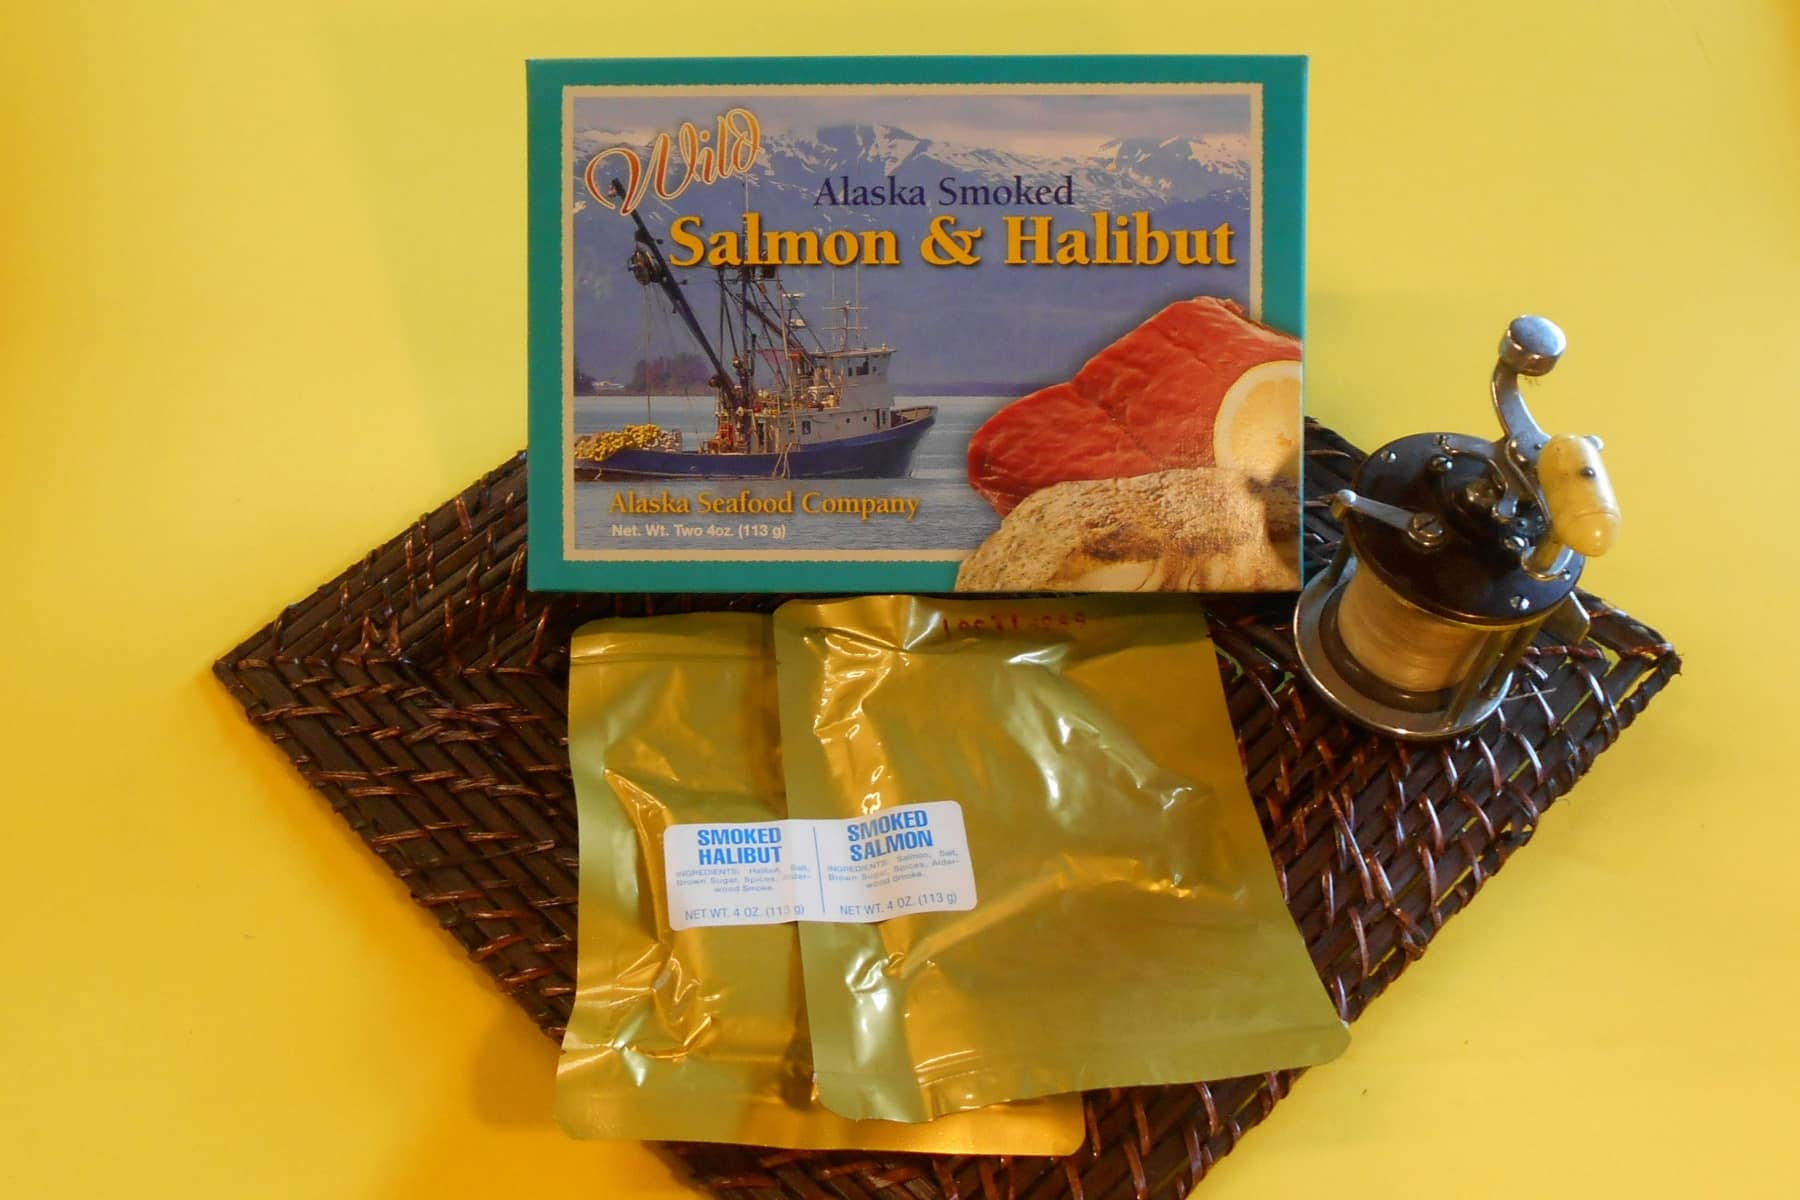 Smoked Salmon and Halibut Gift Box